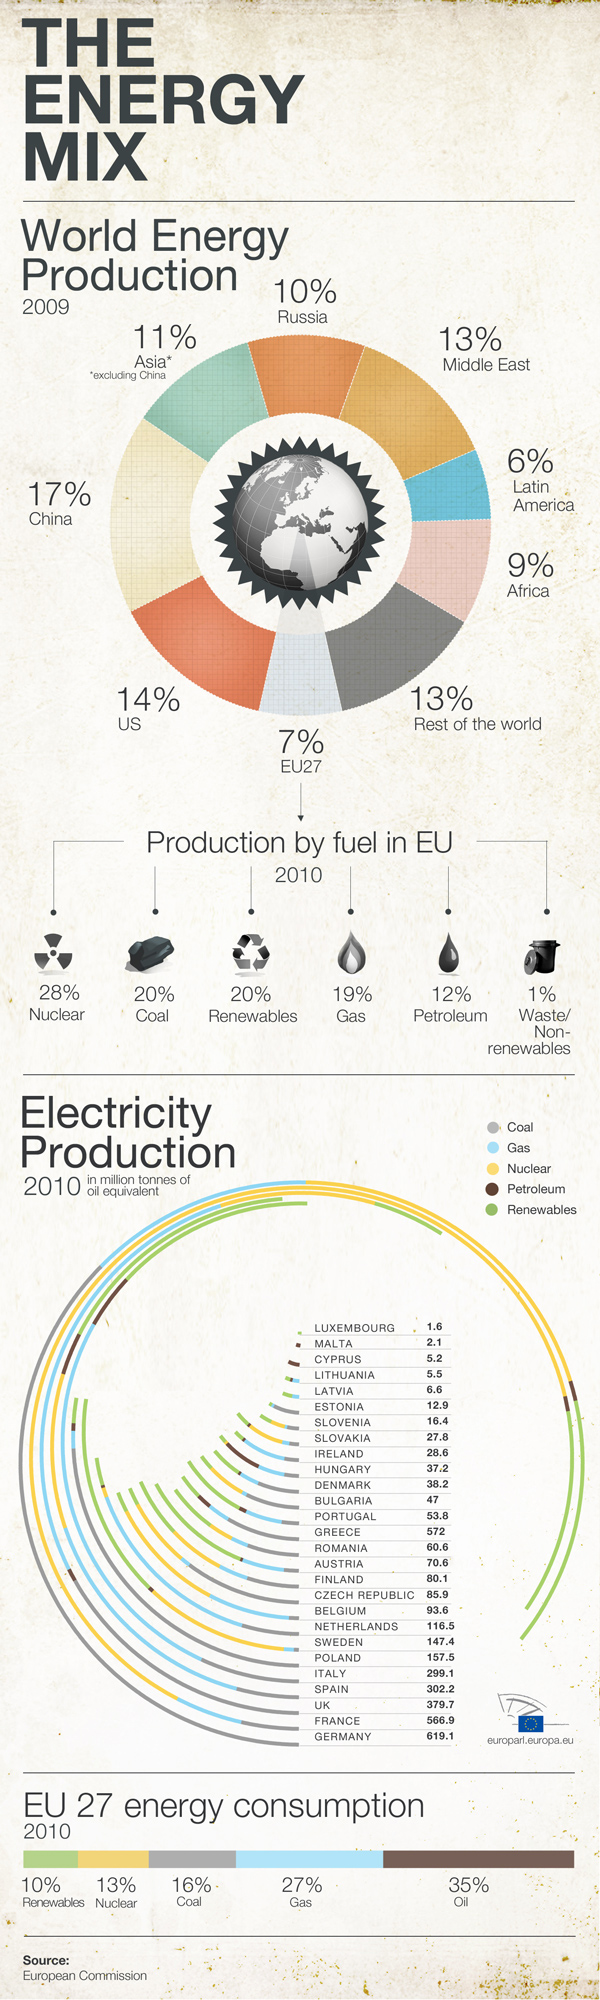 Parliament fuels debate over Europe's future energy use